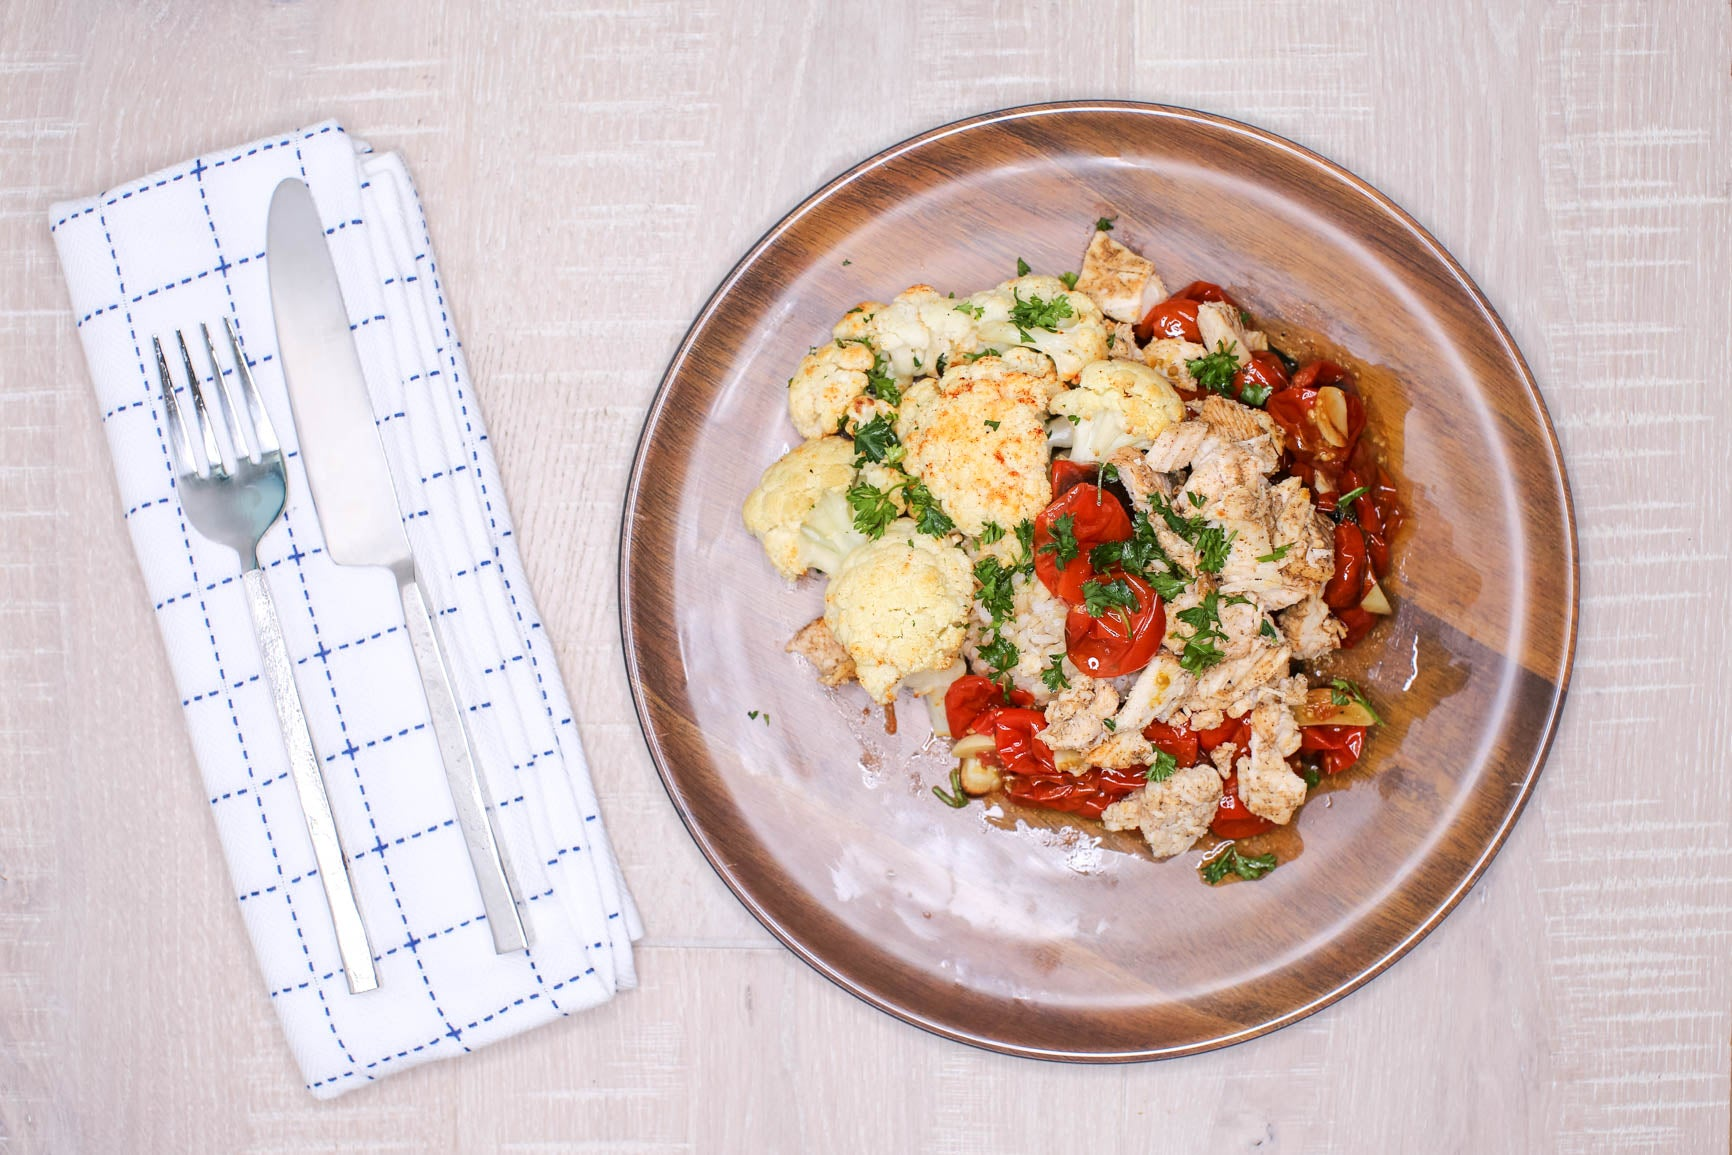 Slow Roasted Tomatoes & Herbed Cauliflower w/ Chicken